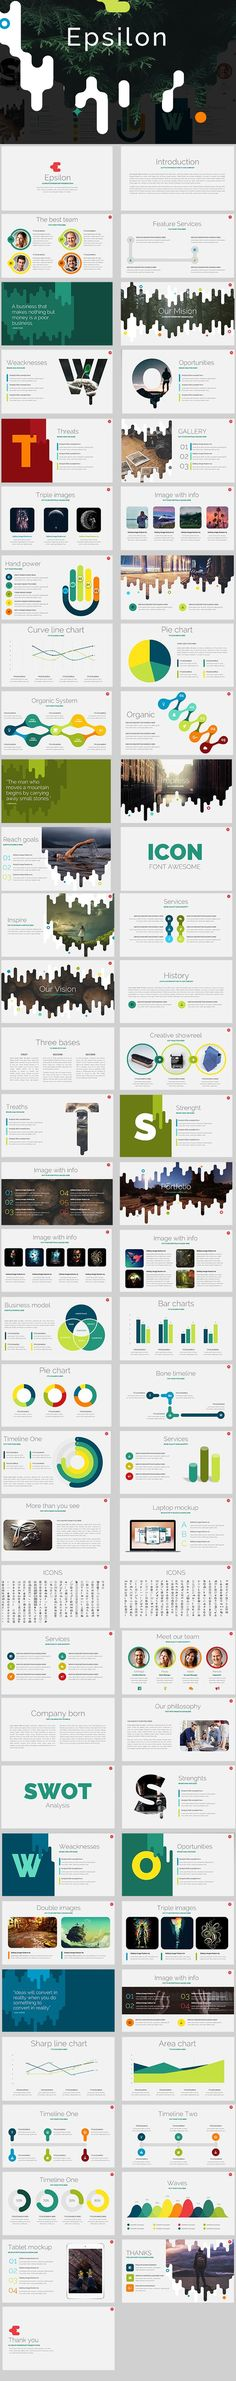 121 best business powerpoint templates images on pinterest